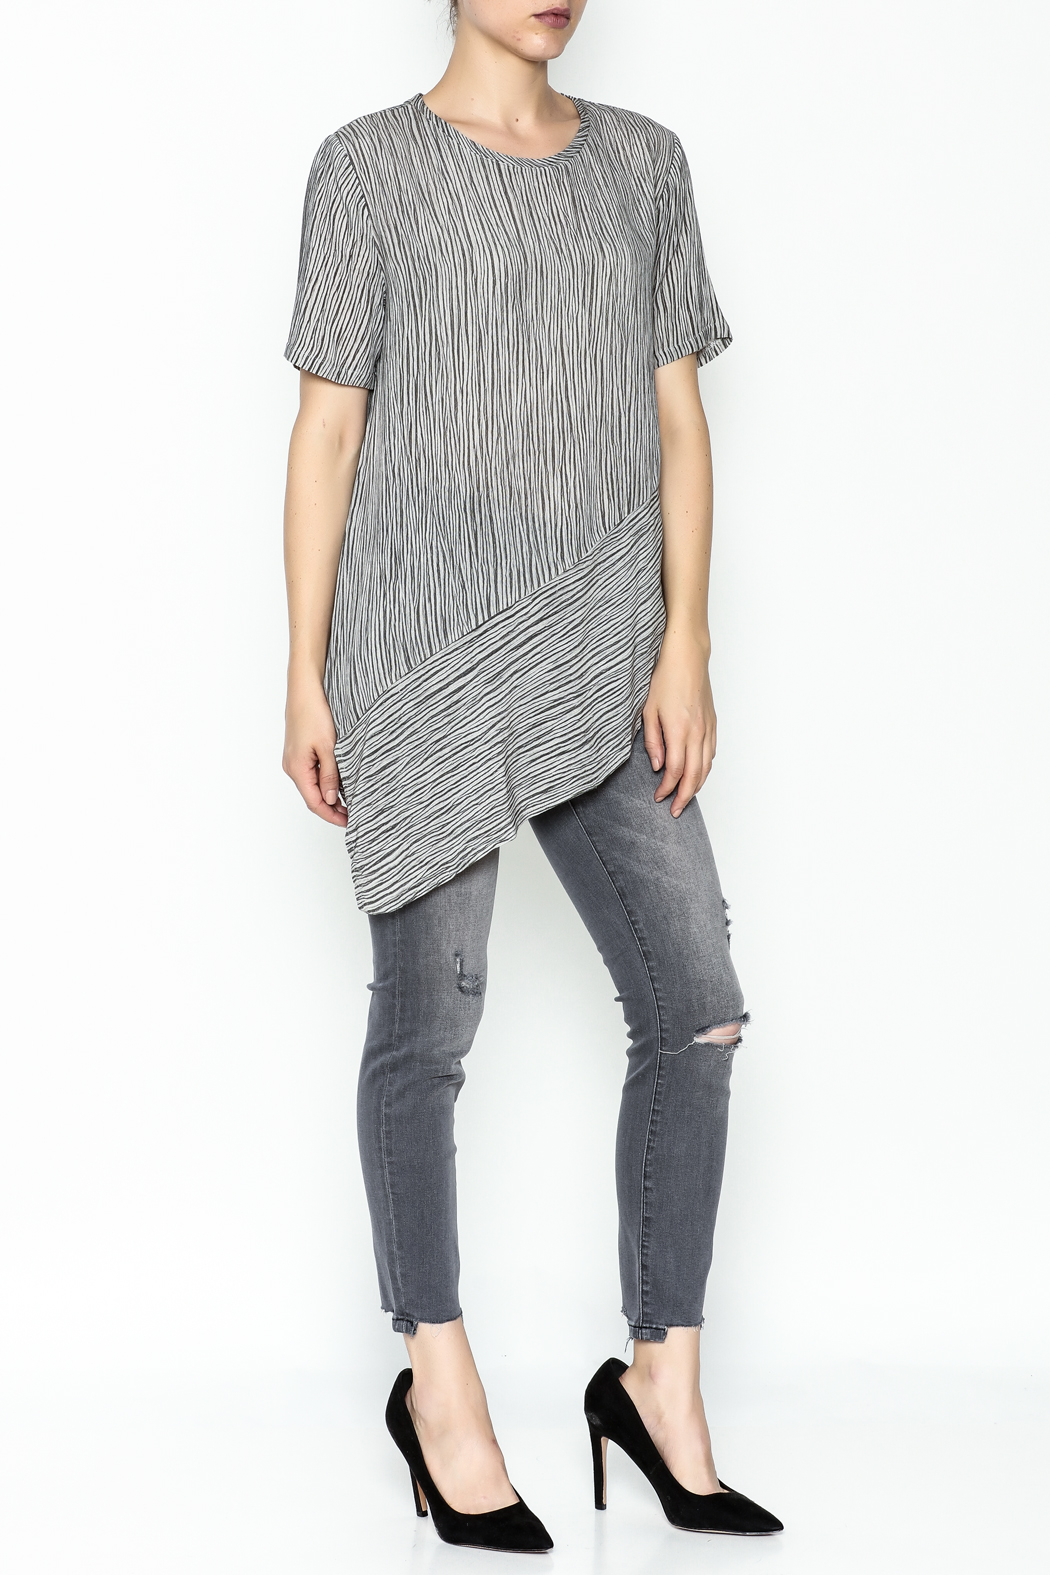 Ronen Chen Assymetrical Top - Side Cropped Image